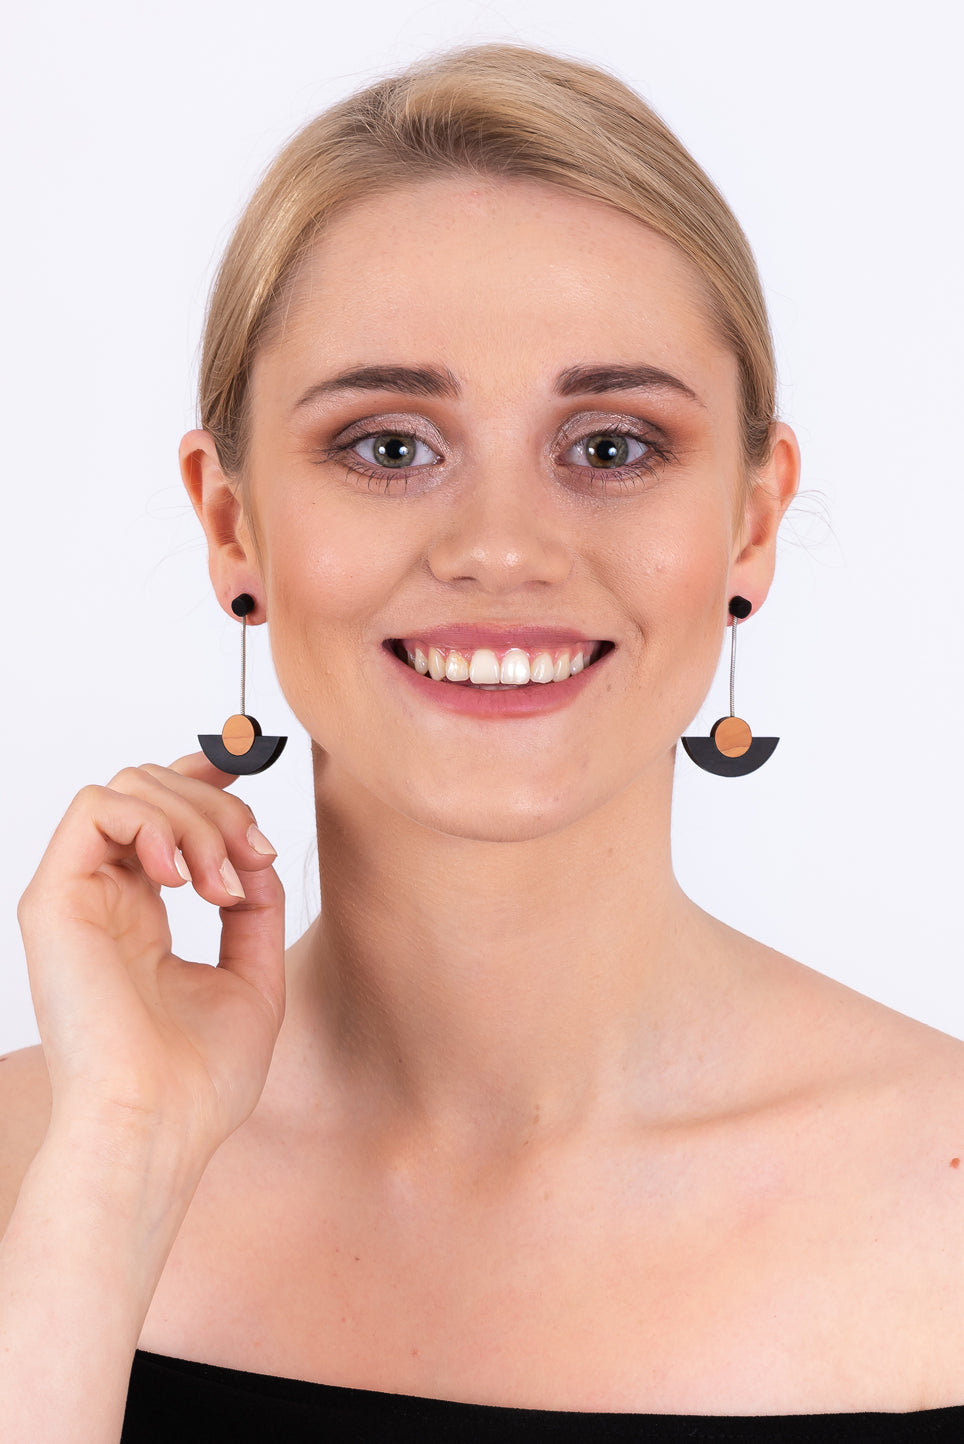 Semi-Circle Drop Earrings | Black & Silver